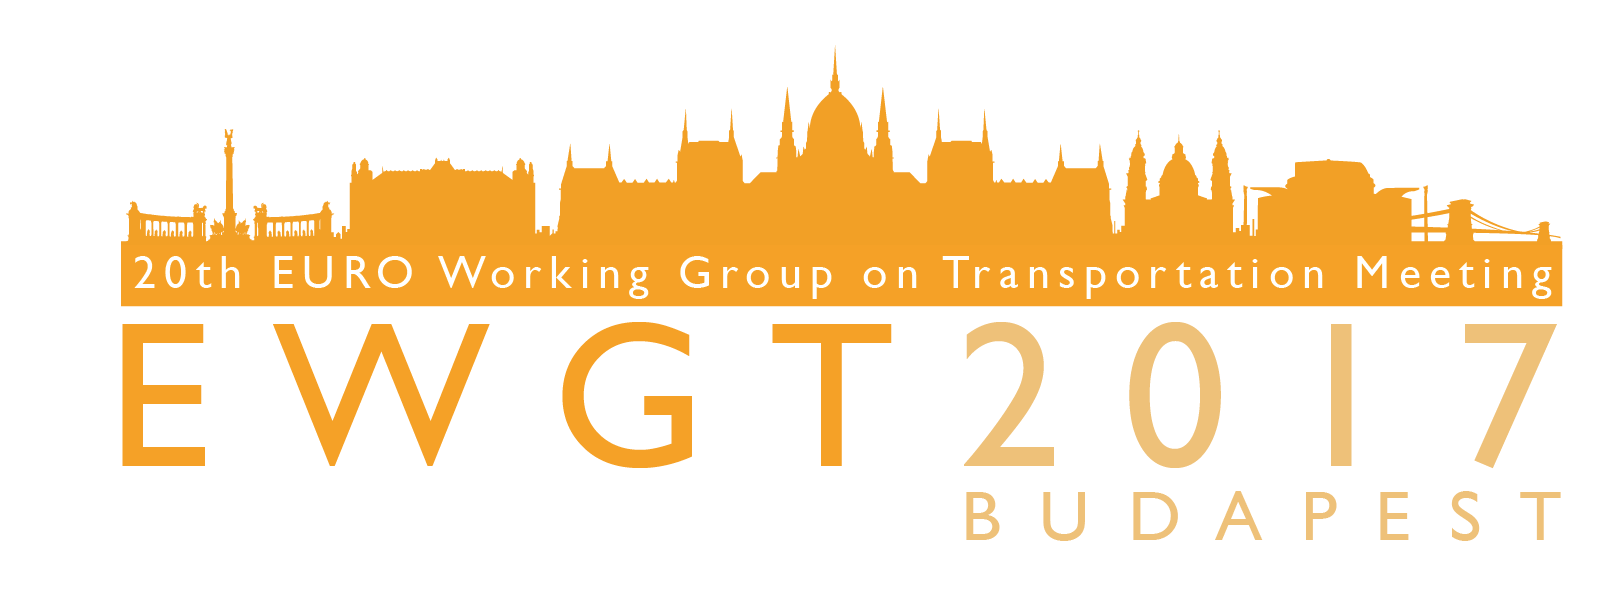 EURO Working Group on Transportation